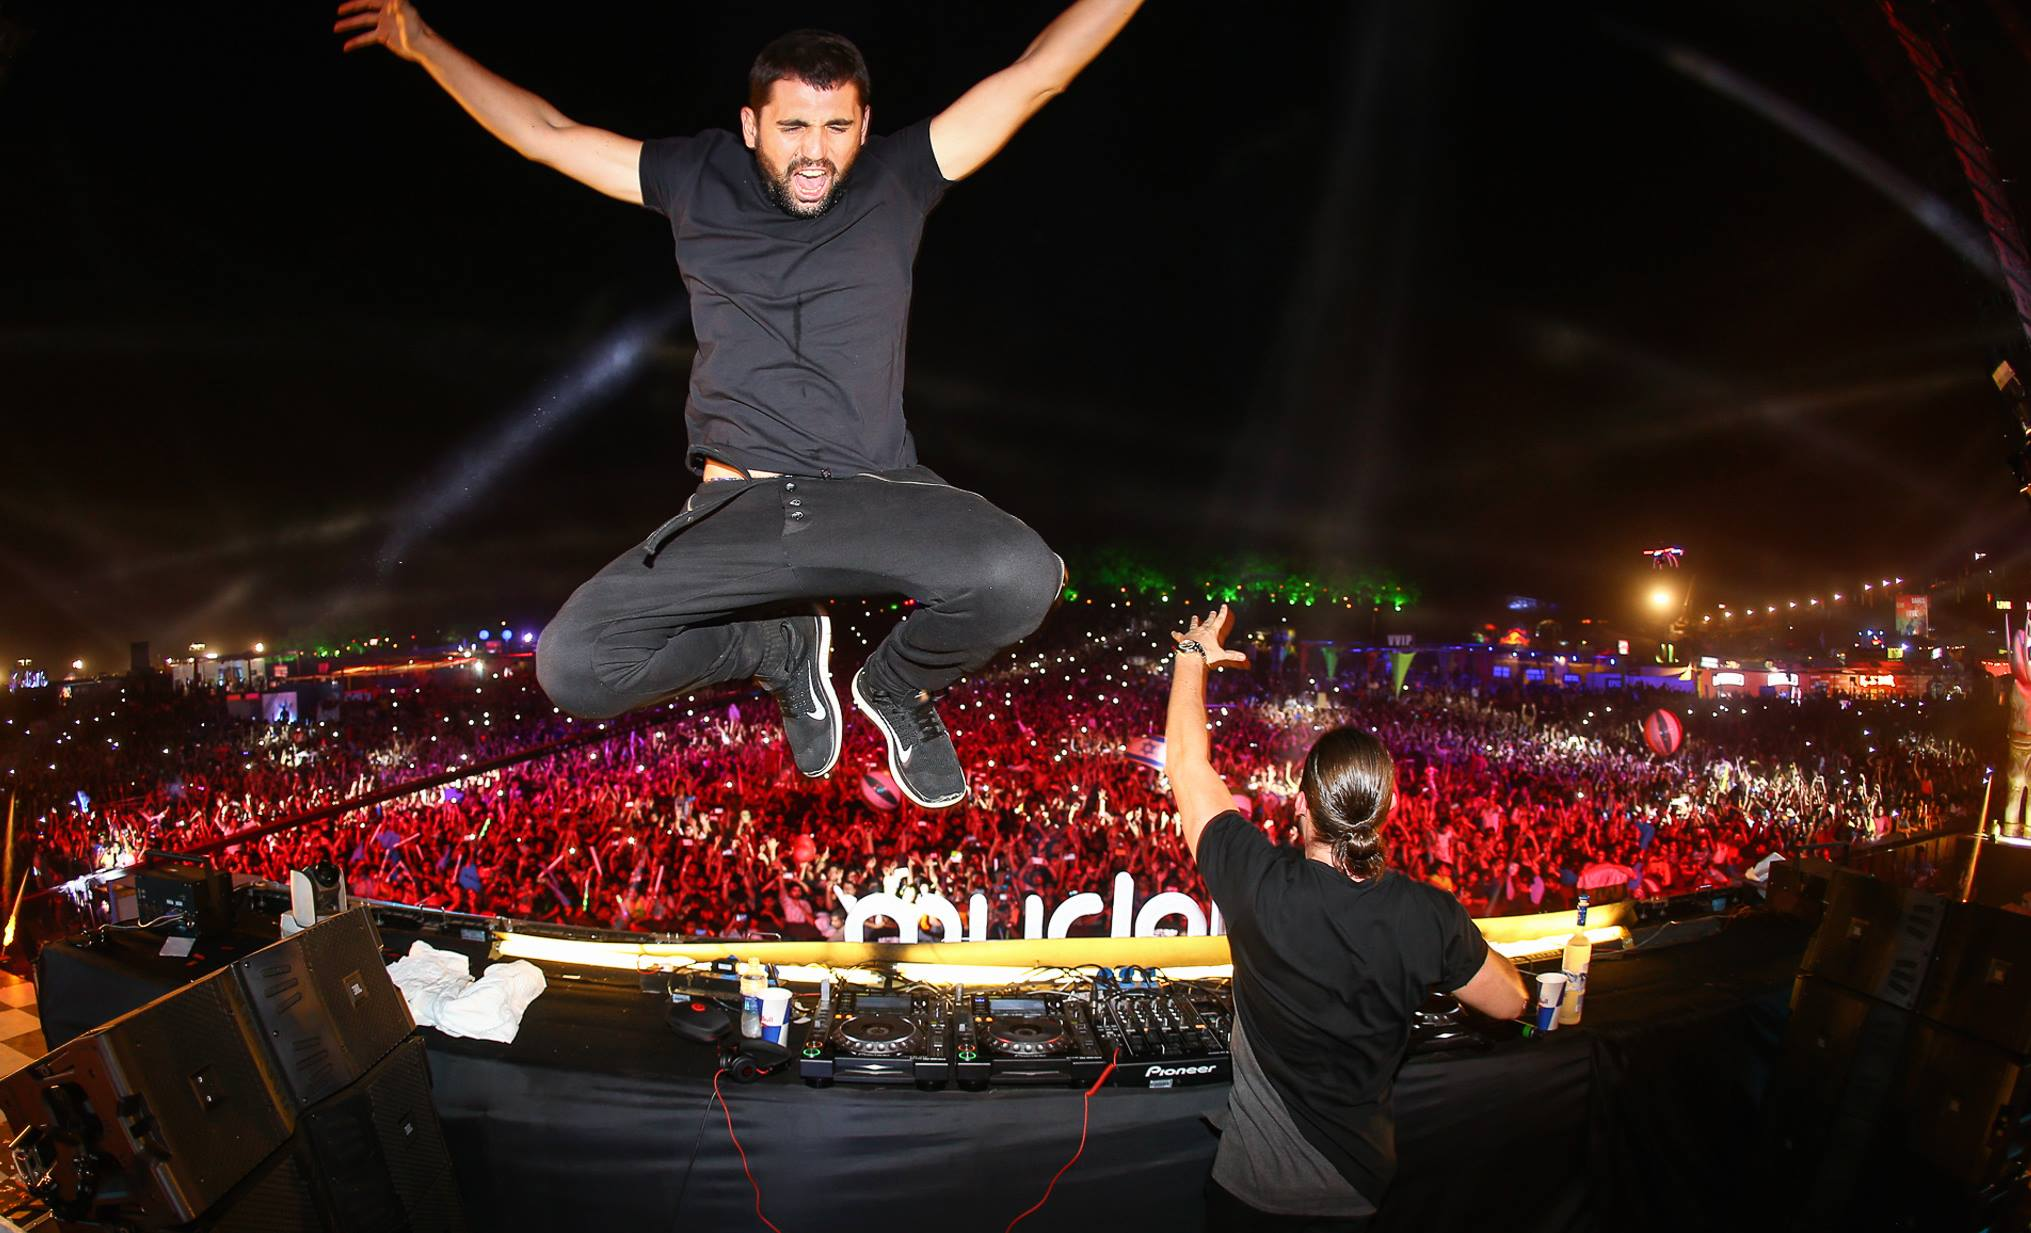 Dimitri Vegas And Like Mike Photo Image Gallery On Tribalmixes